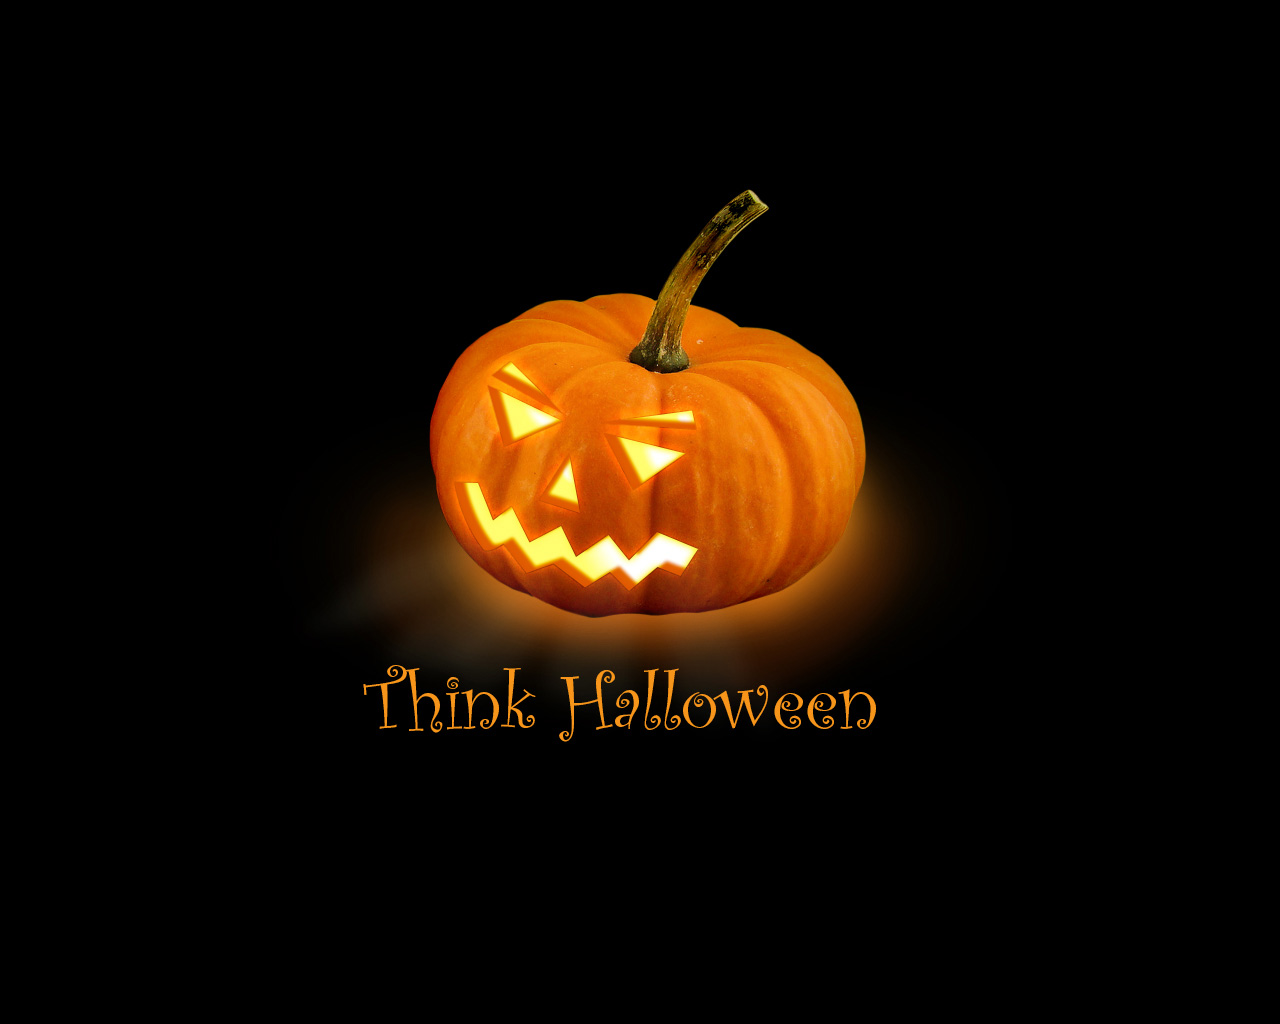 Halloween Wallpaper And Screensavers 1280x1024